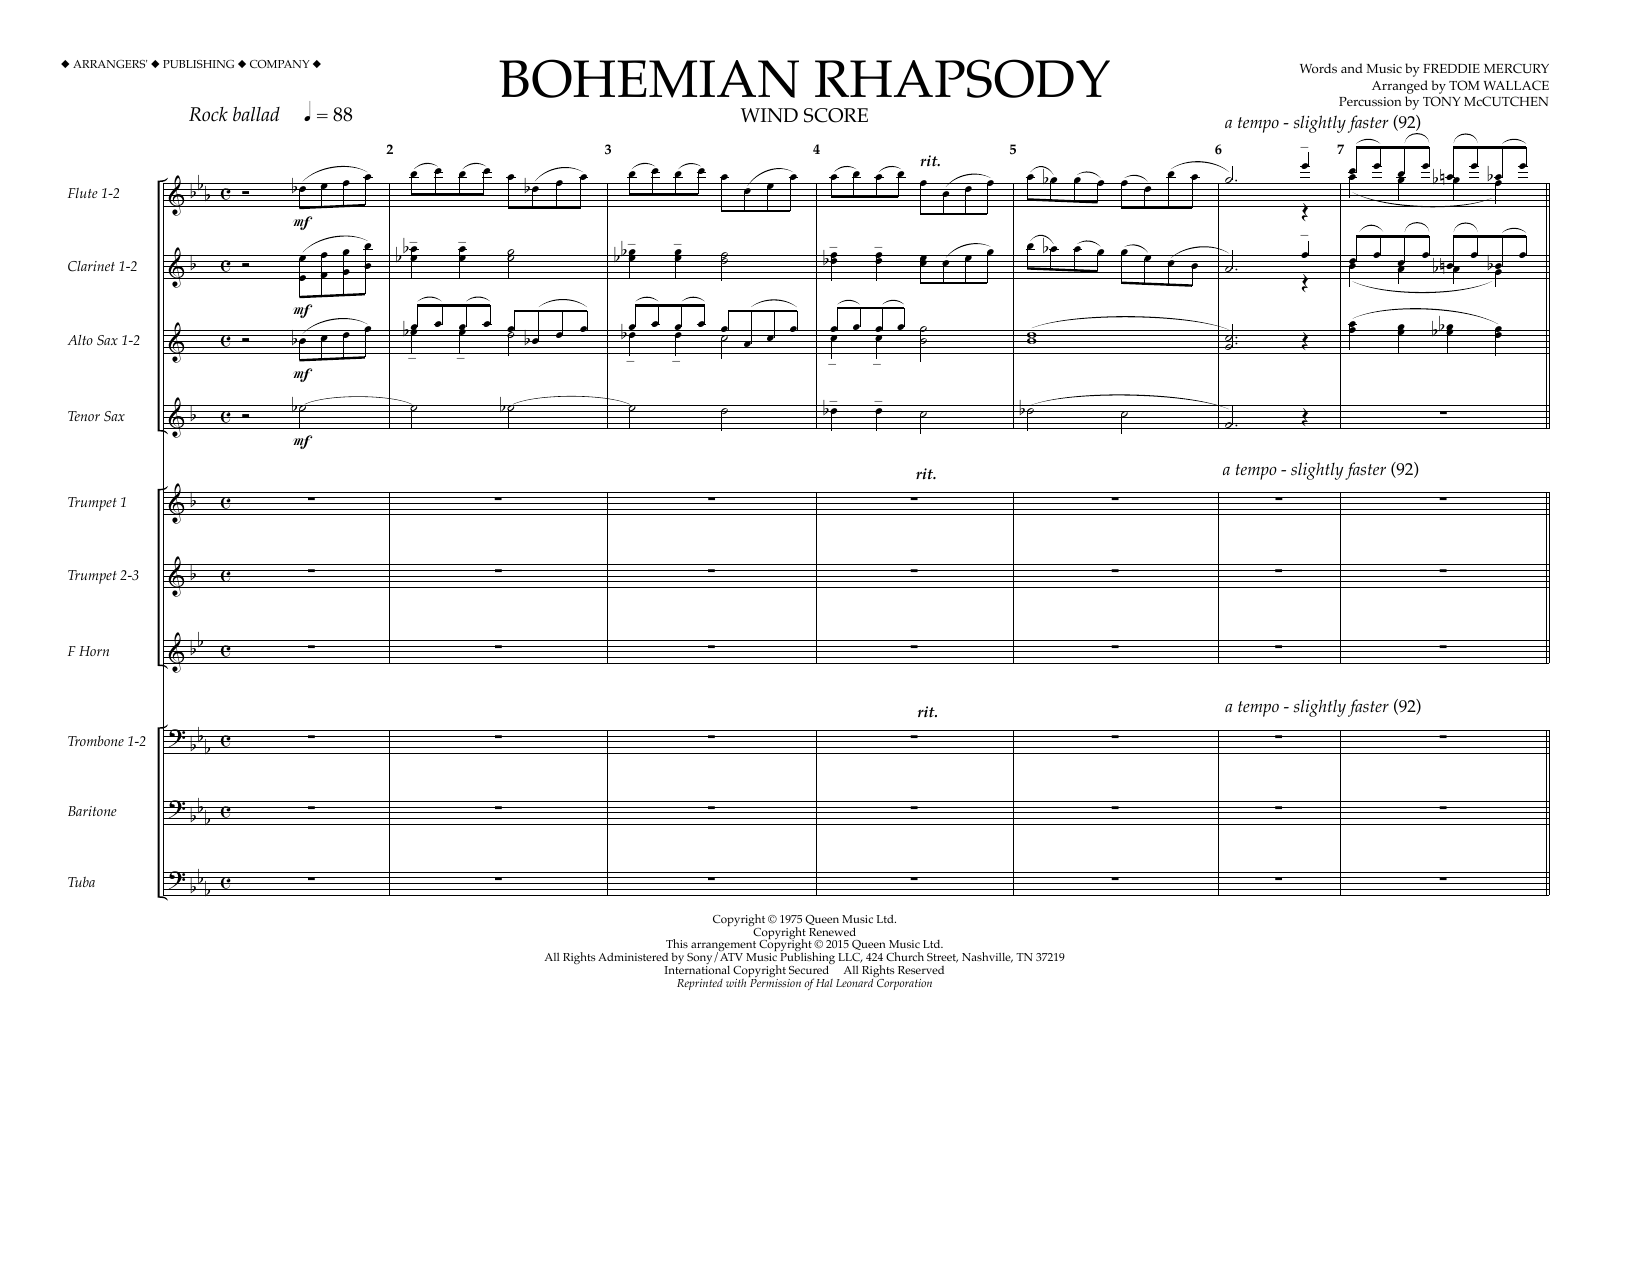 Bohemian Rhapsody - Wind Score Sheet Music